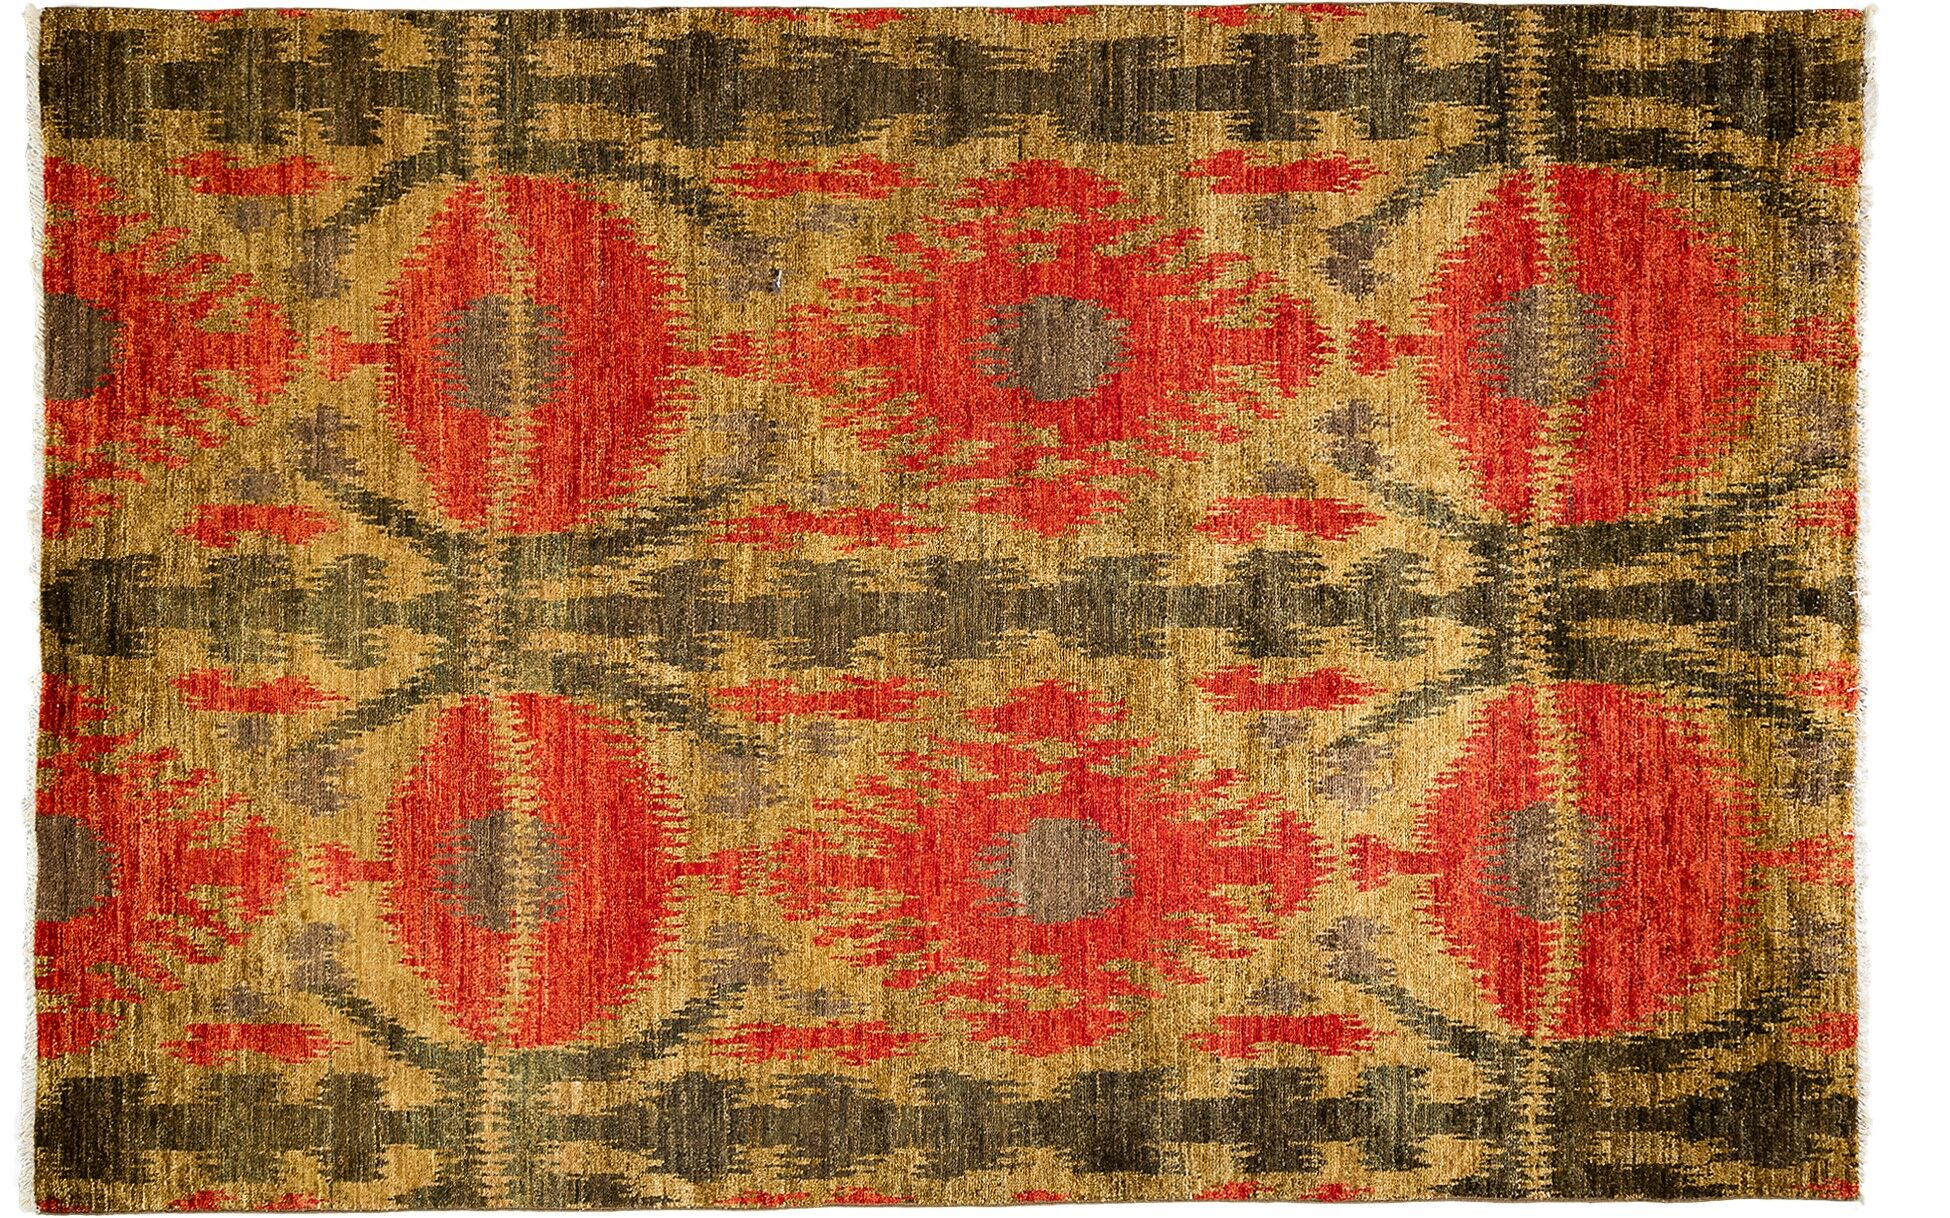 One-of-a-Kind Ikat Hand-Knotted Red Area Rug